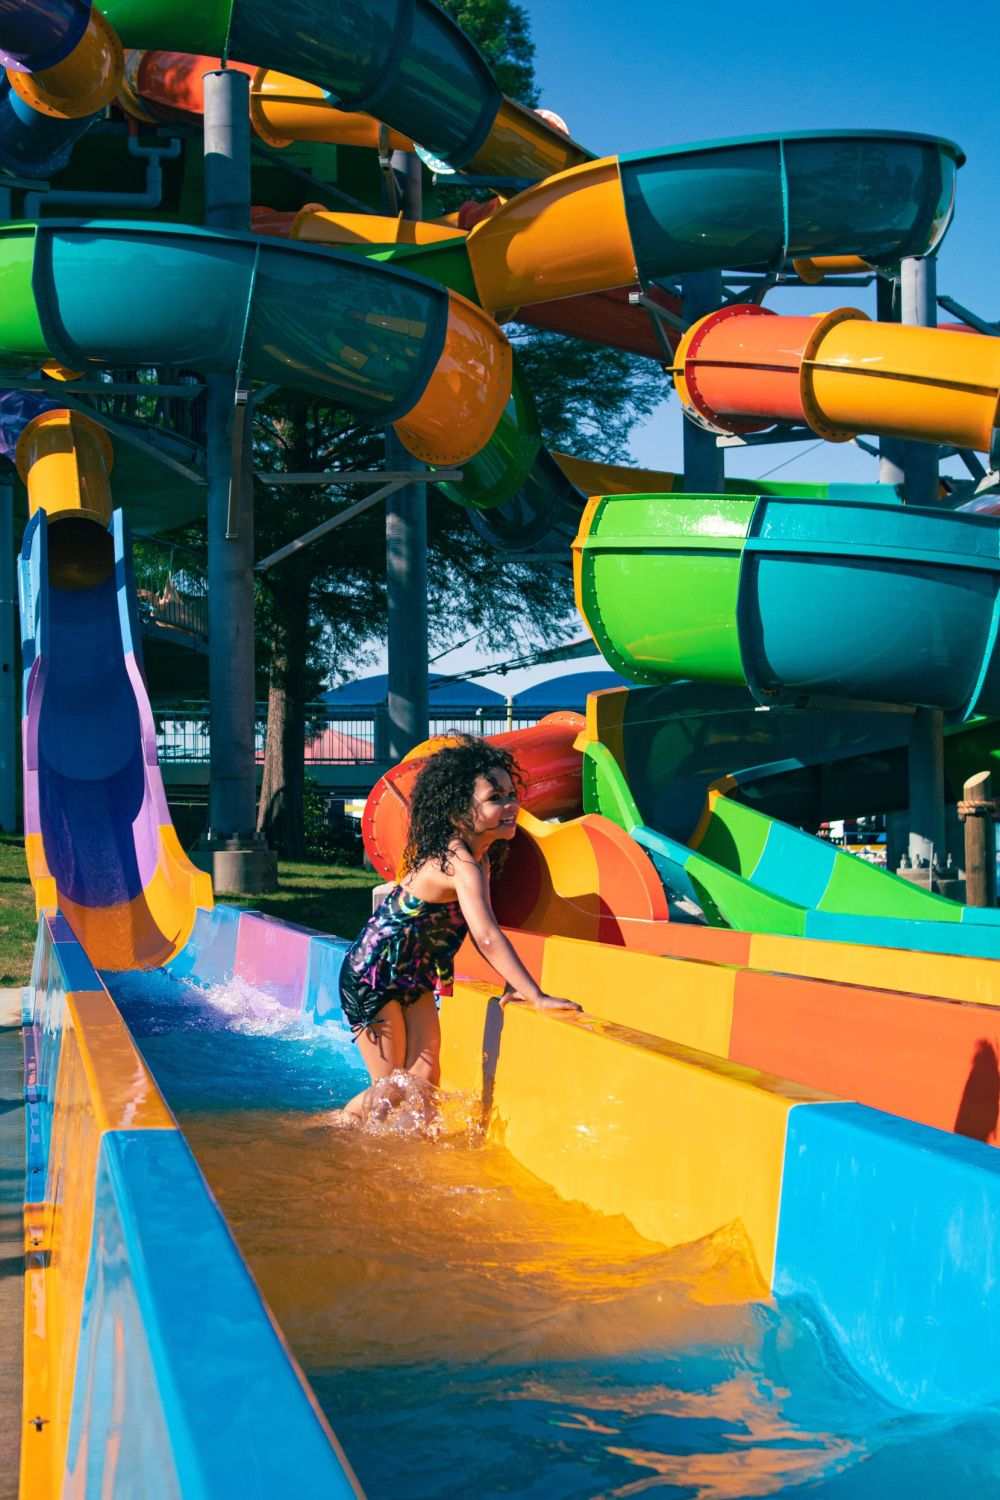 The Banzai Pipeline at Six Flags Hurricane Harbor Arlington has three slides to twist, turn and spin riders.